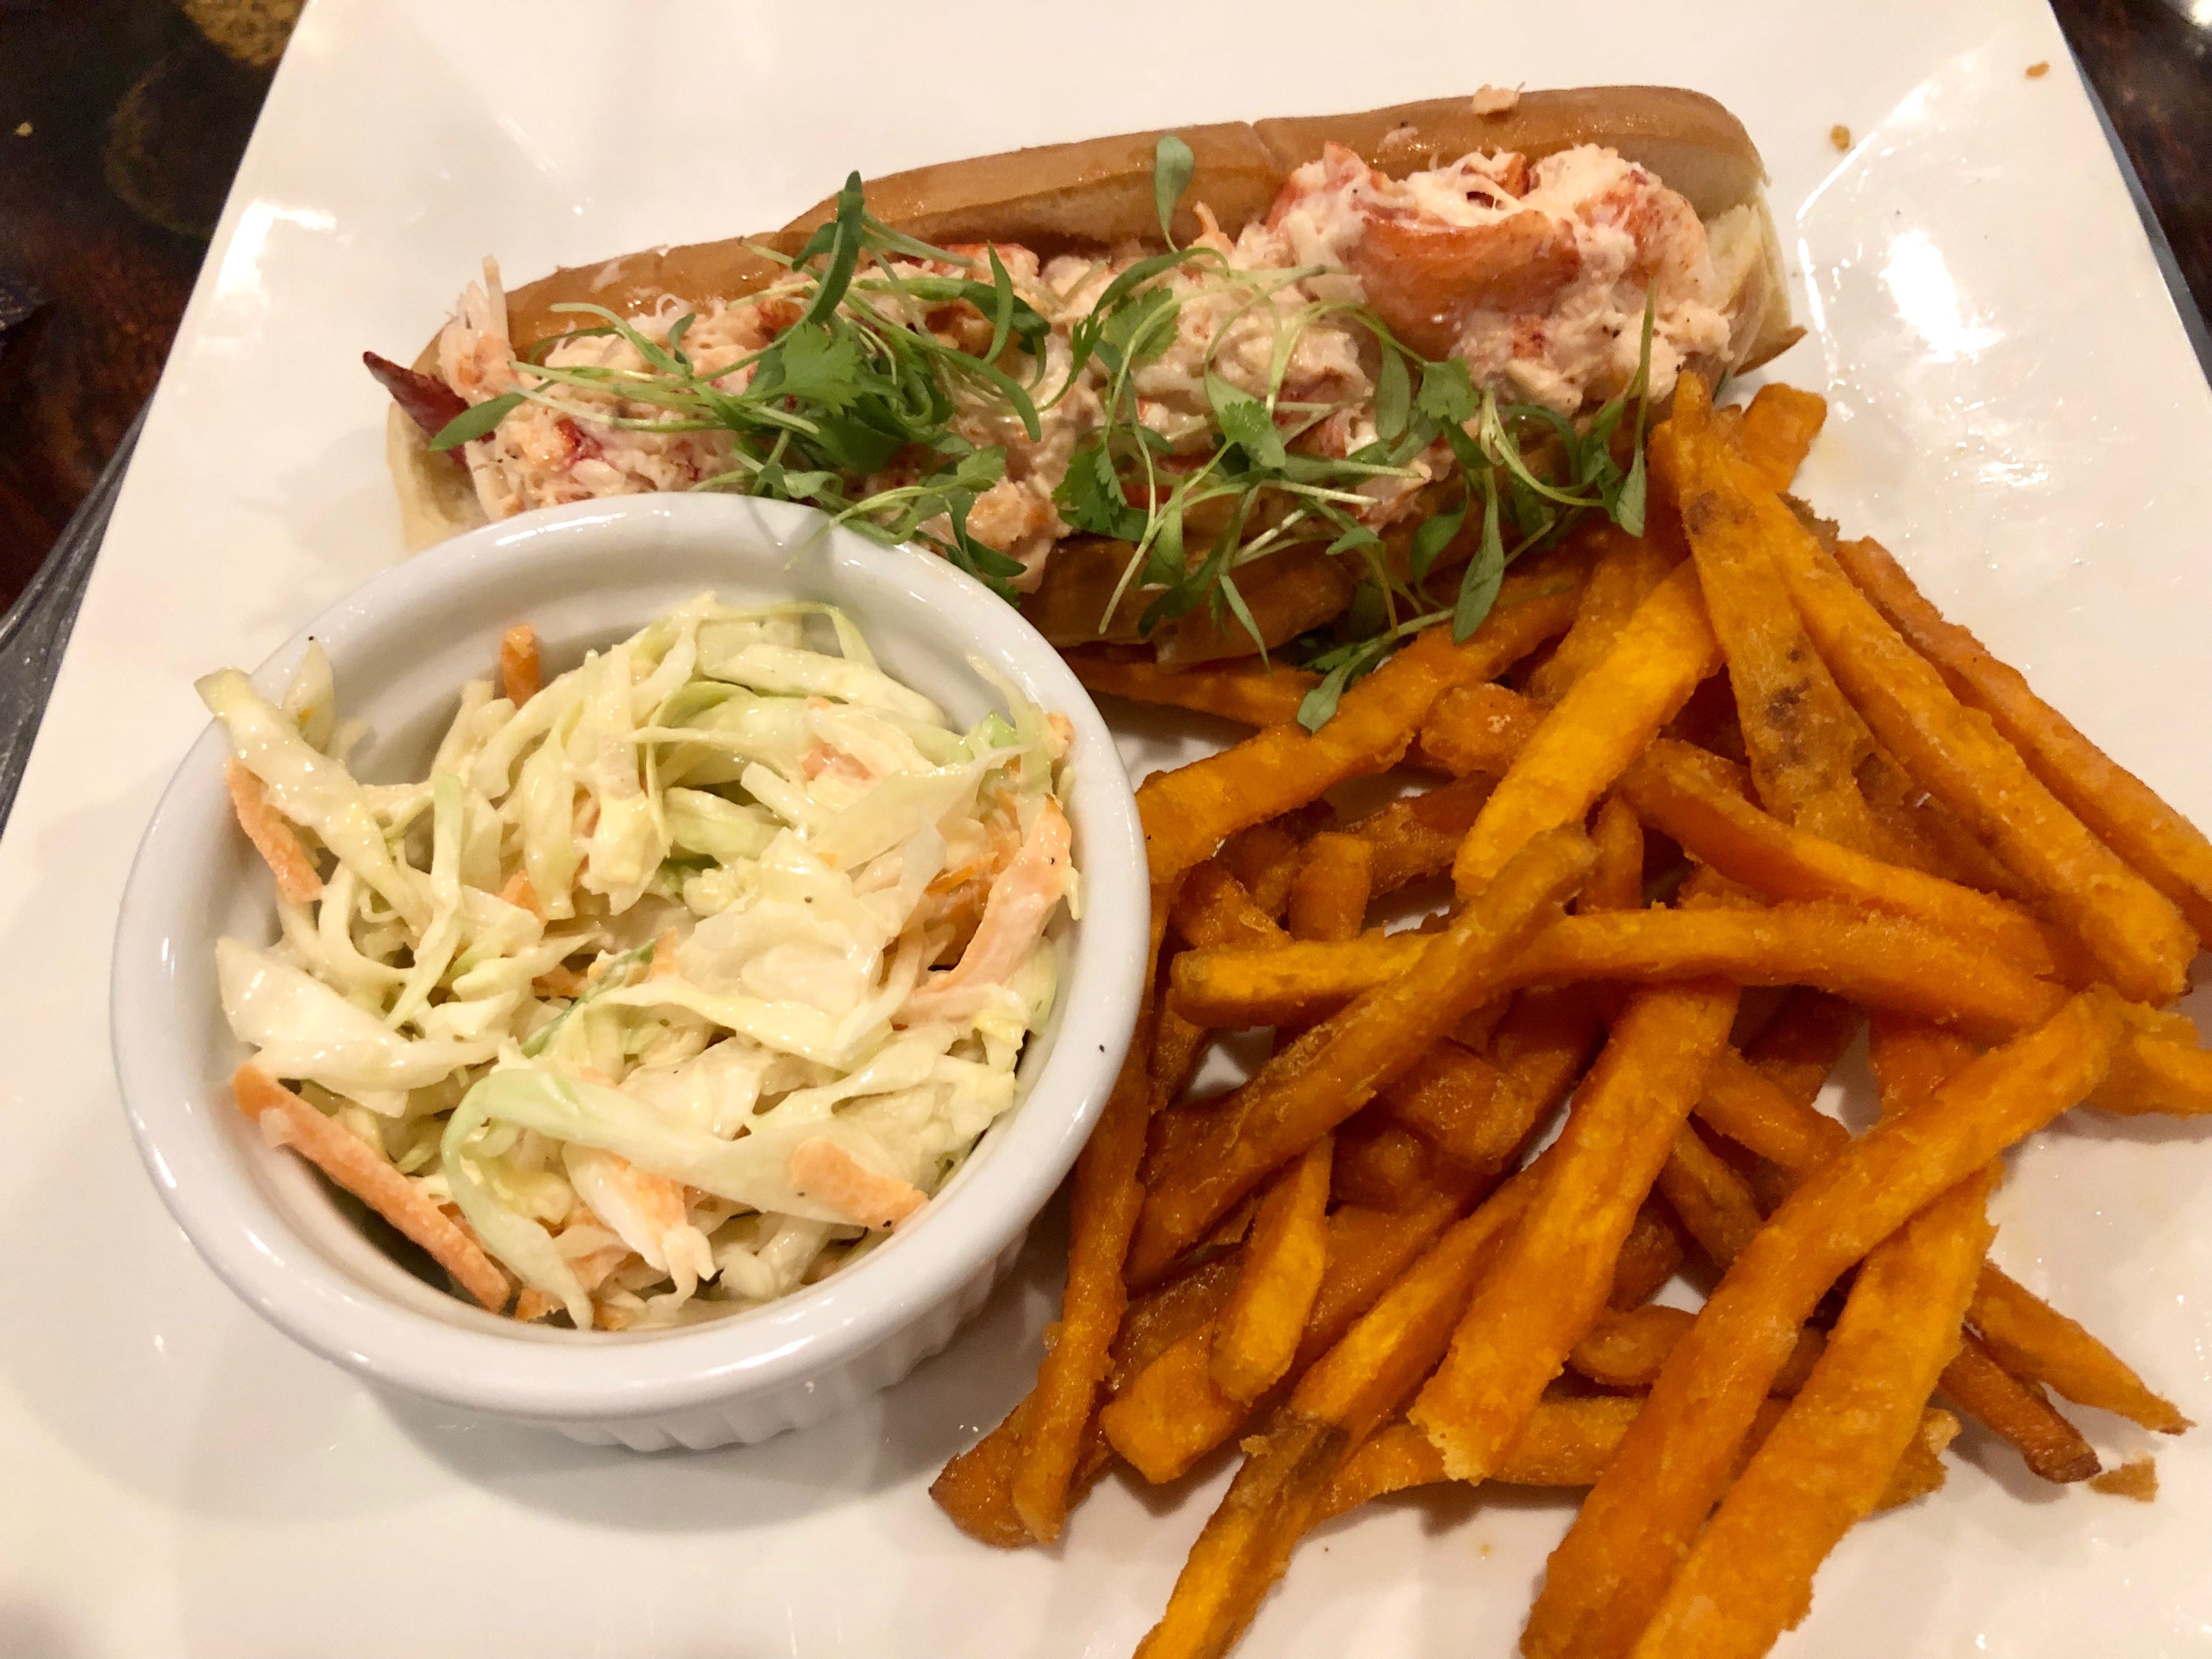 A lobster roll with sweet potato fries and slaw at Drop the Anchor seafood restaurant in North Naples.